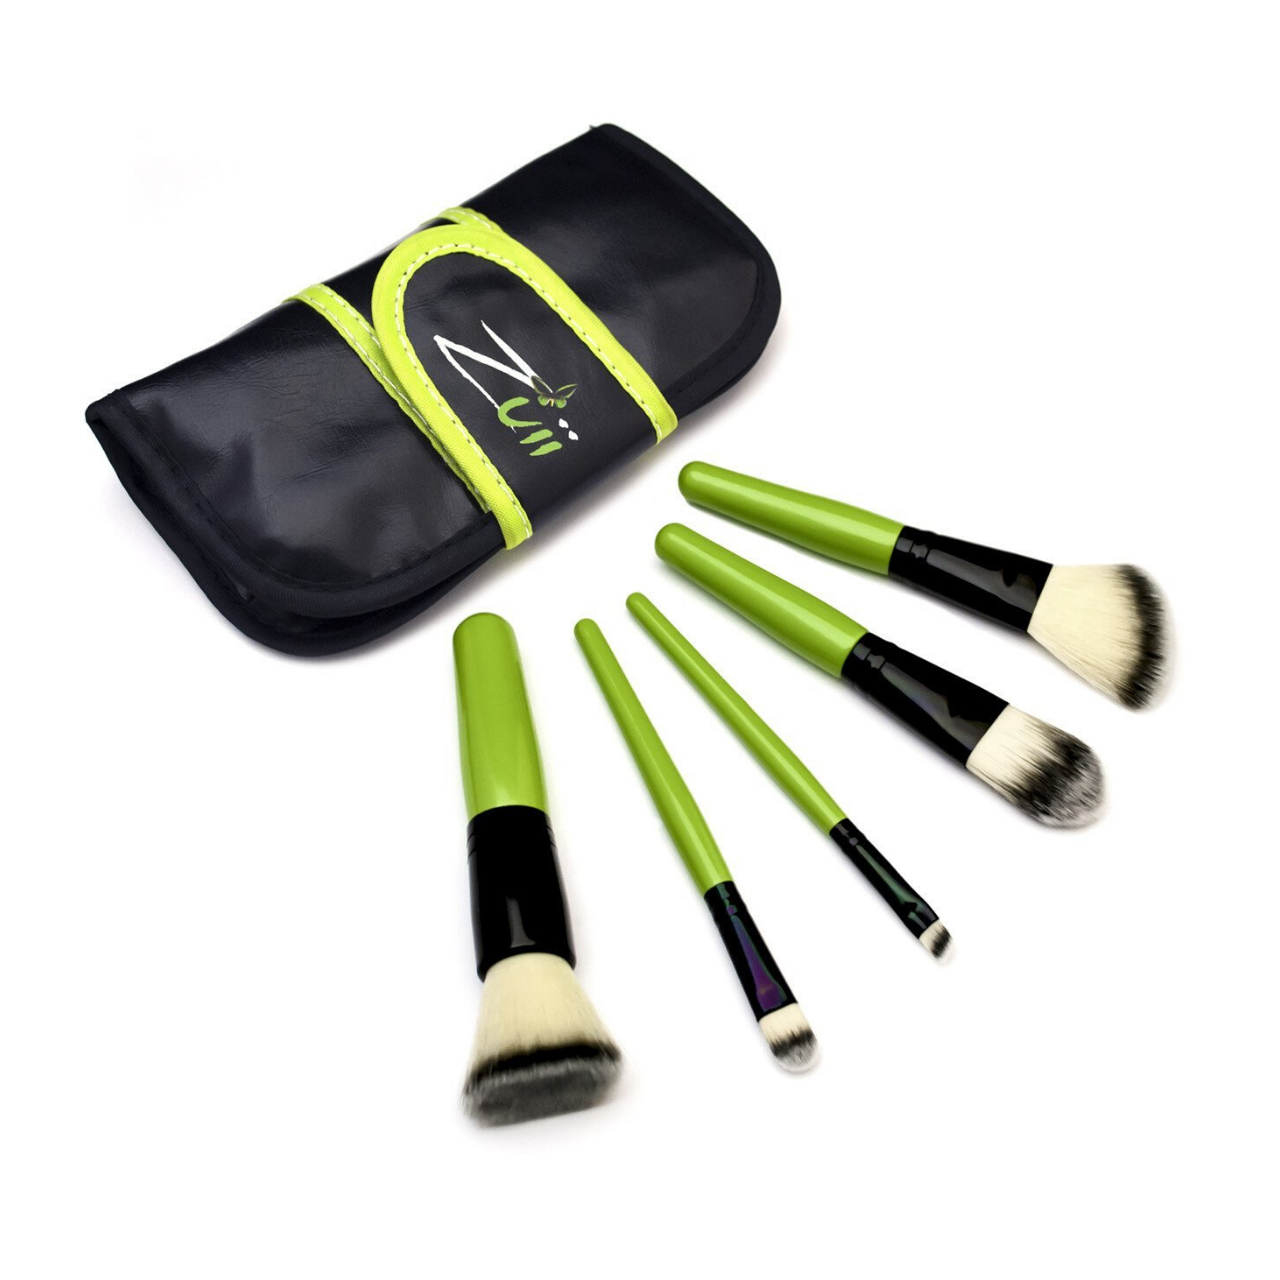 Zuii Make-up Brushes